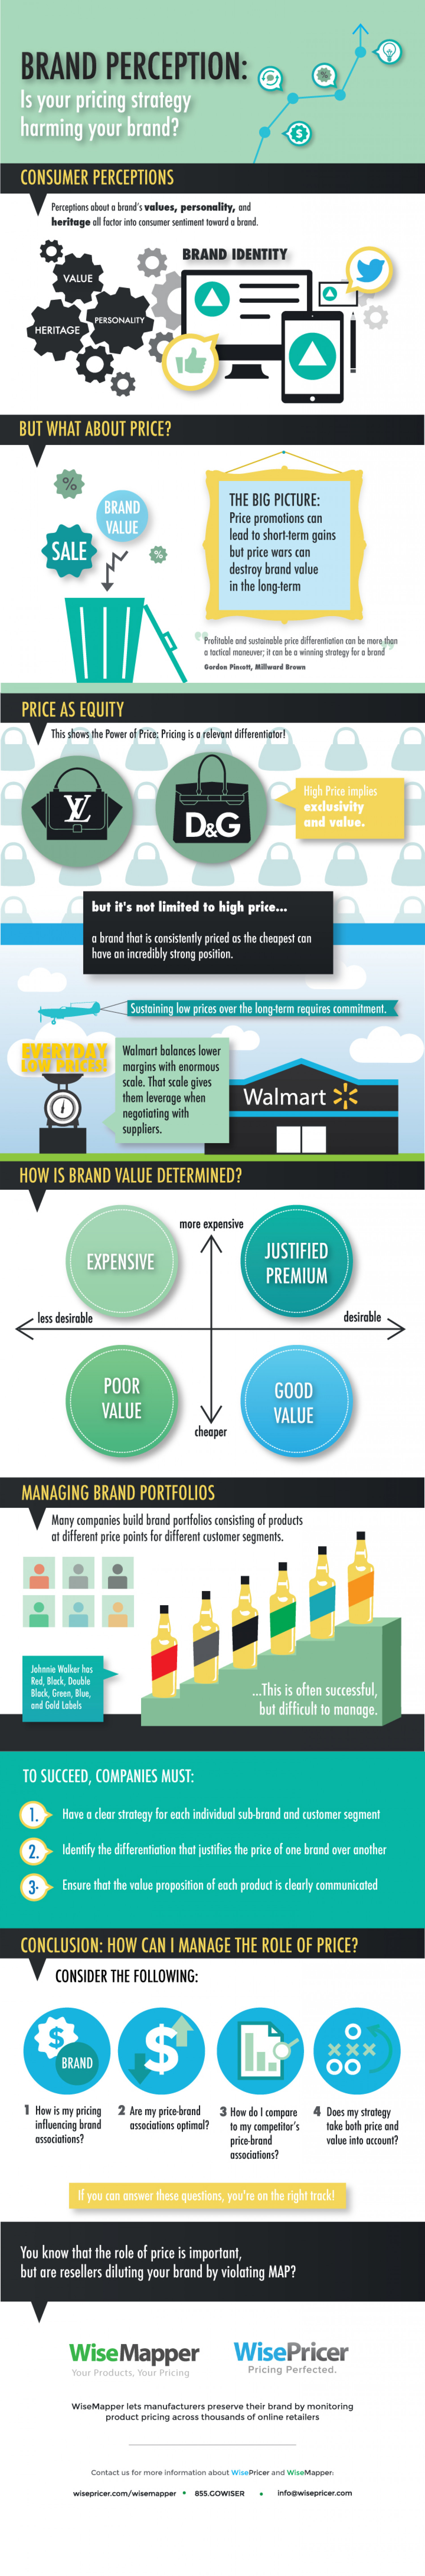 Brand Perception: Is Your Pricing Strategy Harming Your Brand? Infographic